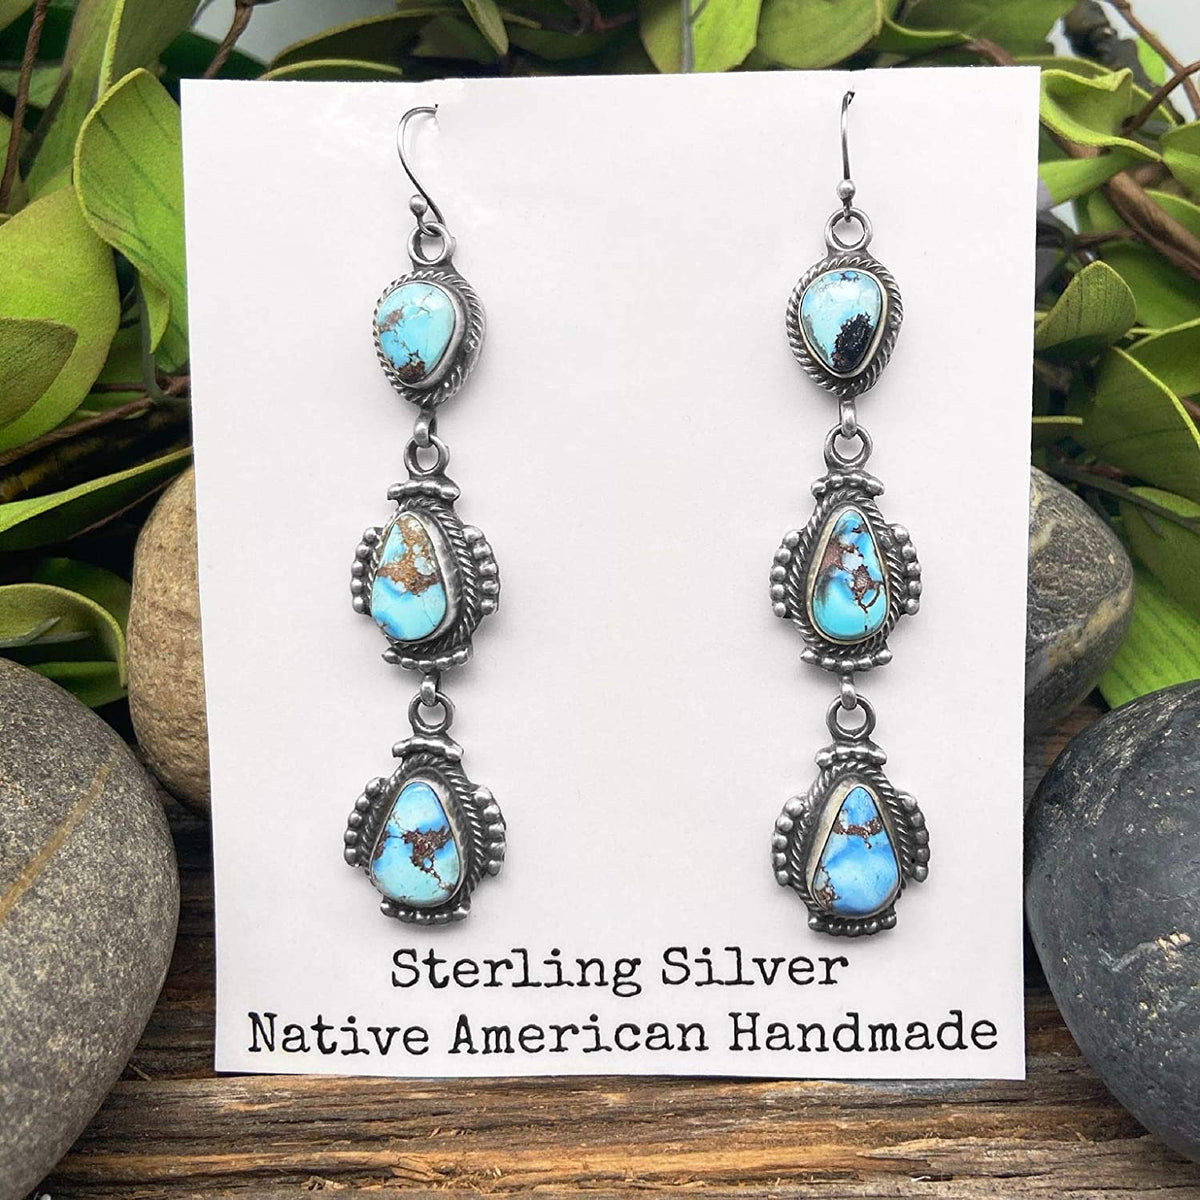 Genuine Golden Hill Turquoise Statement Earrings, Sterling Silver, Authentic Navajo Native American USA Handmade, Artist Signed, French Hook, Nickel Free